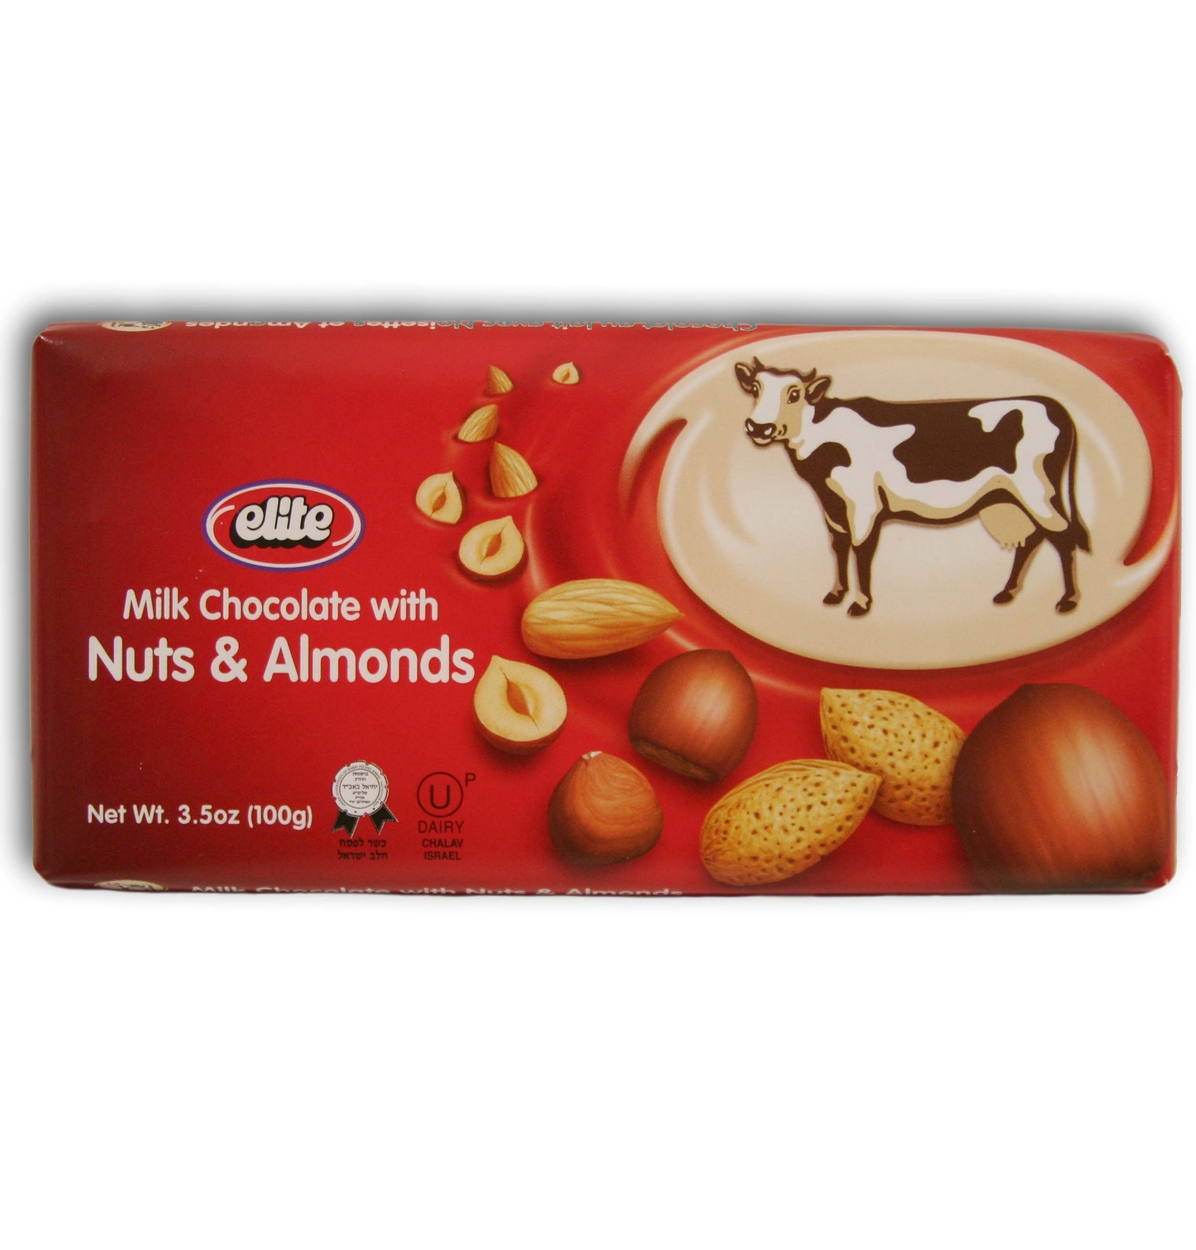 Passover Elite Milk Chocolate with Nuts & Almonds - 12CT Box ...